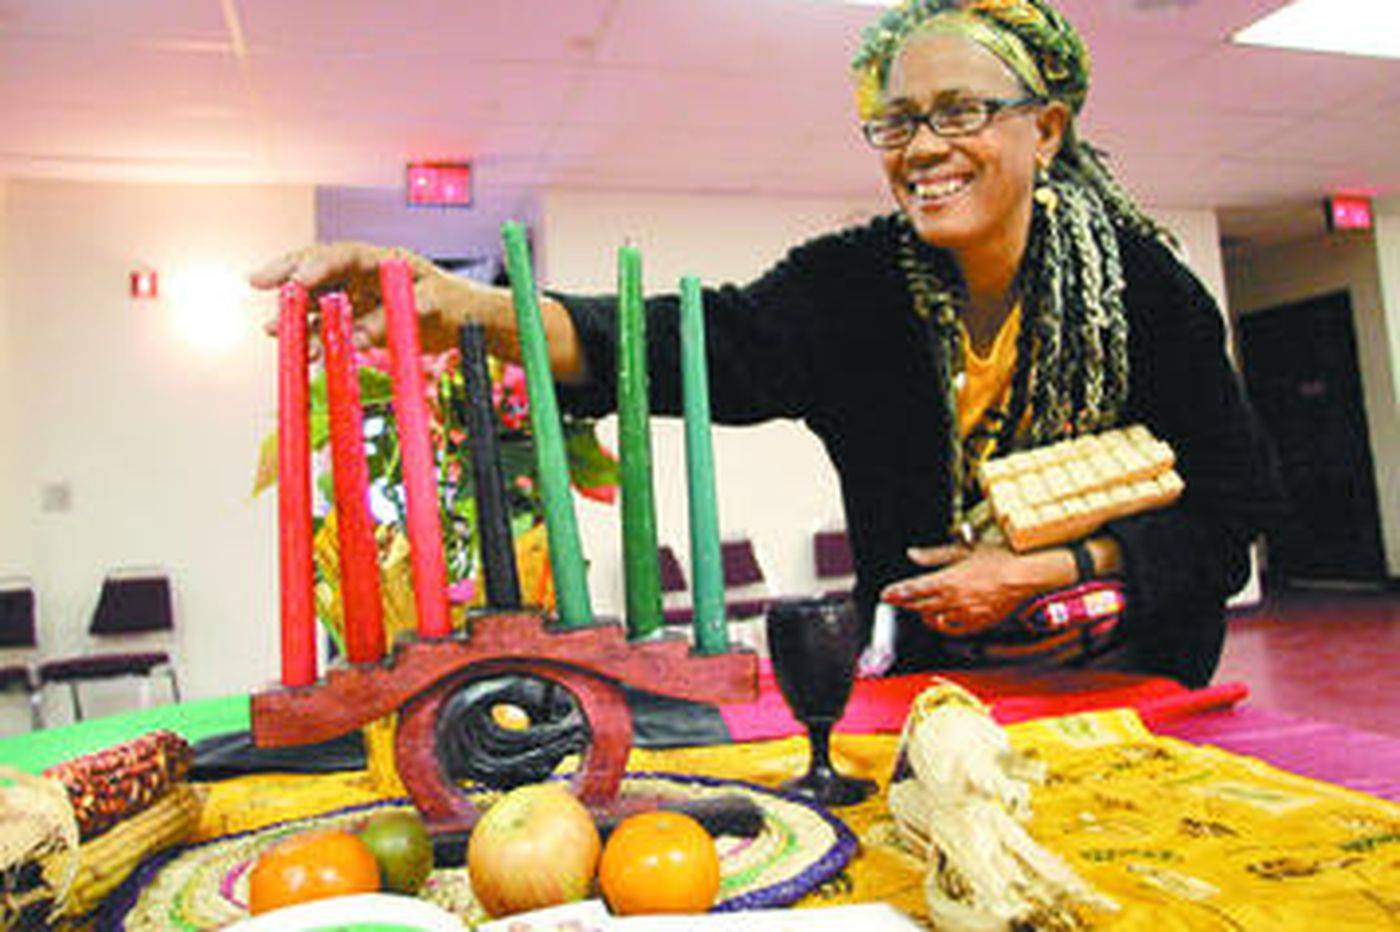 Celebrating Kwanzaa in a troubled time | Opinion